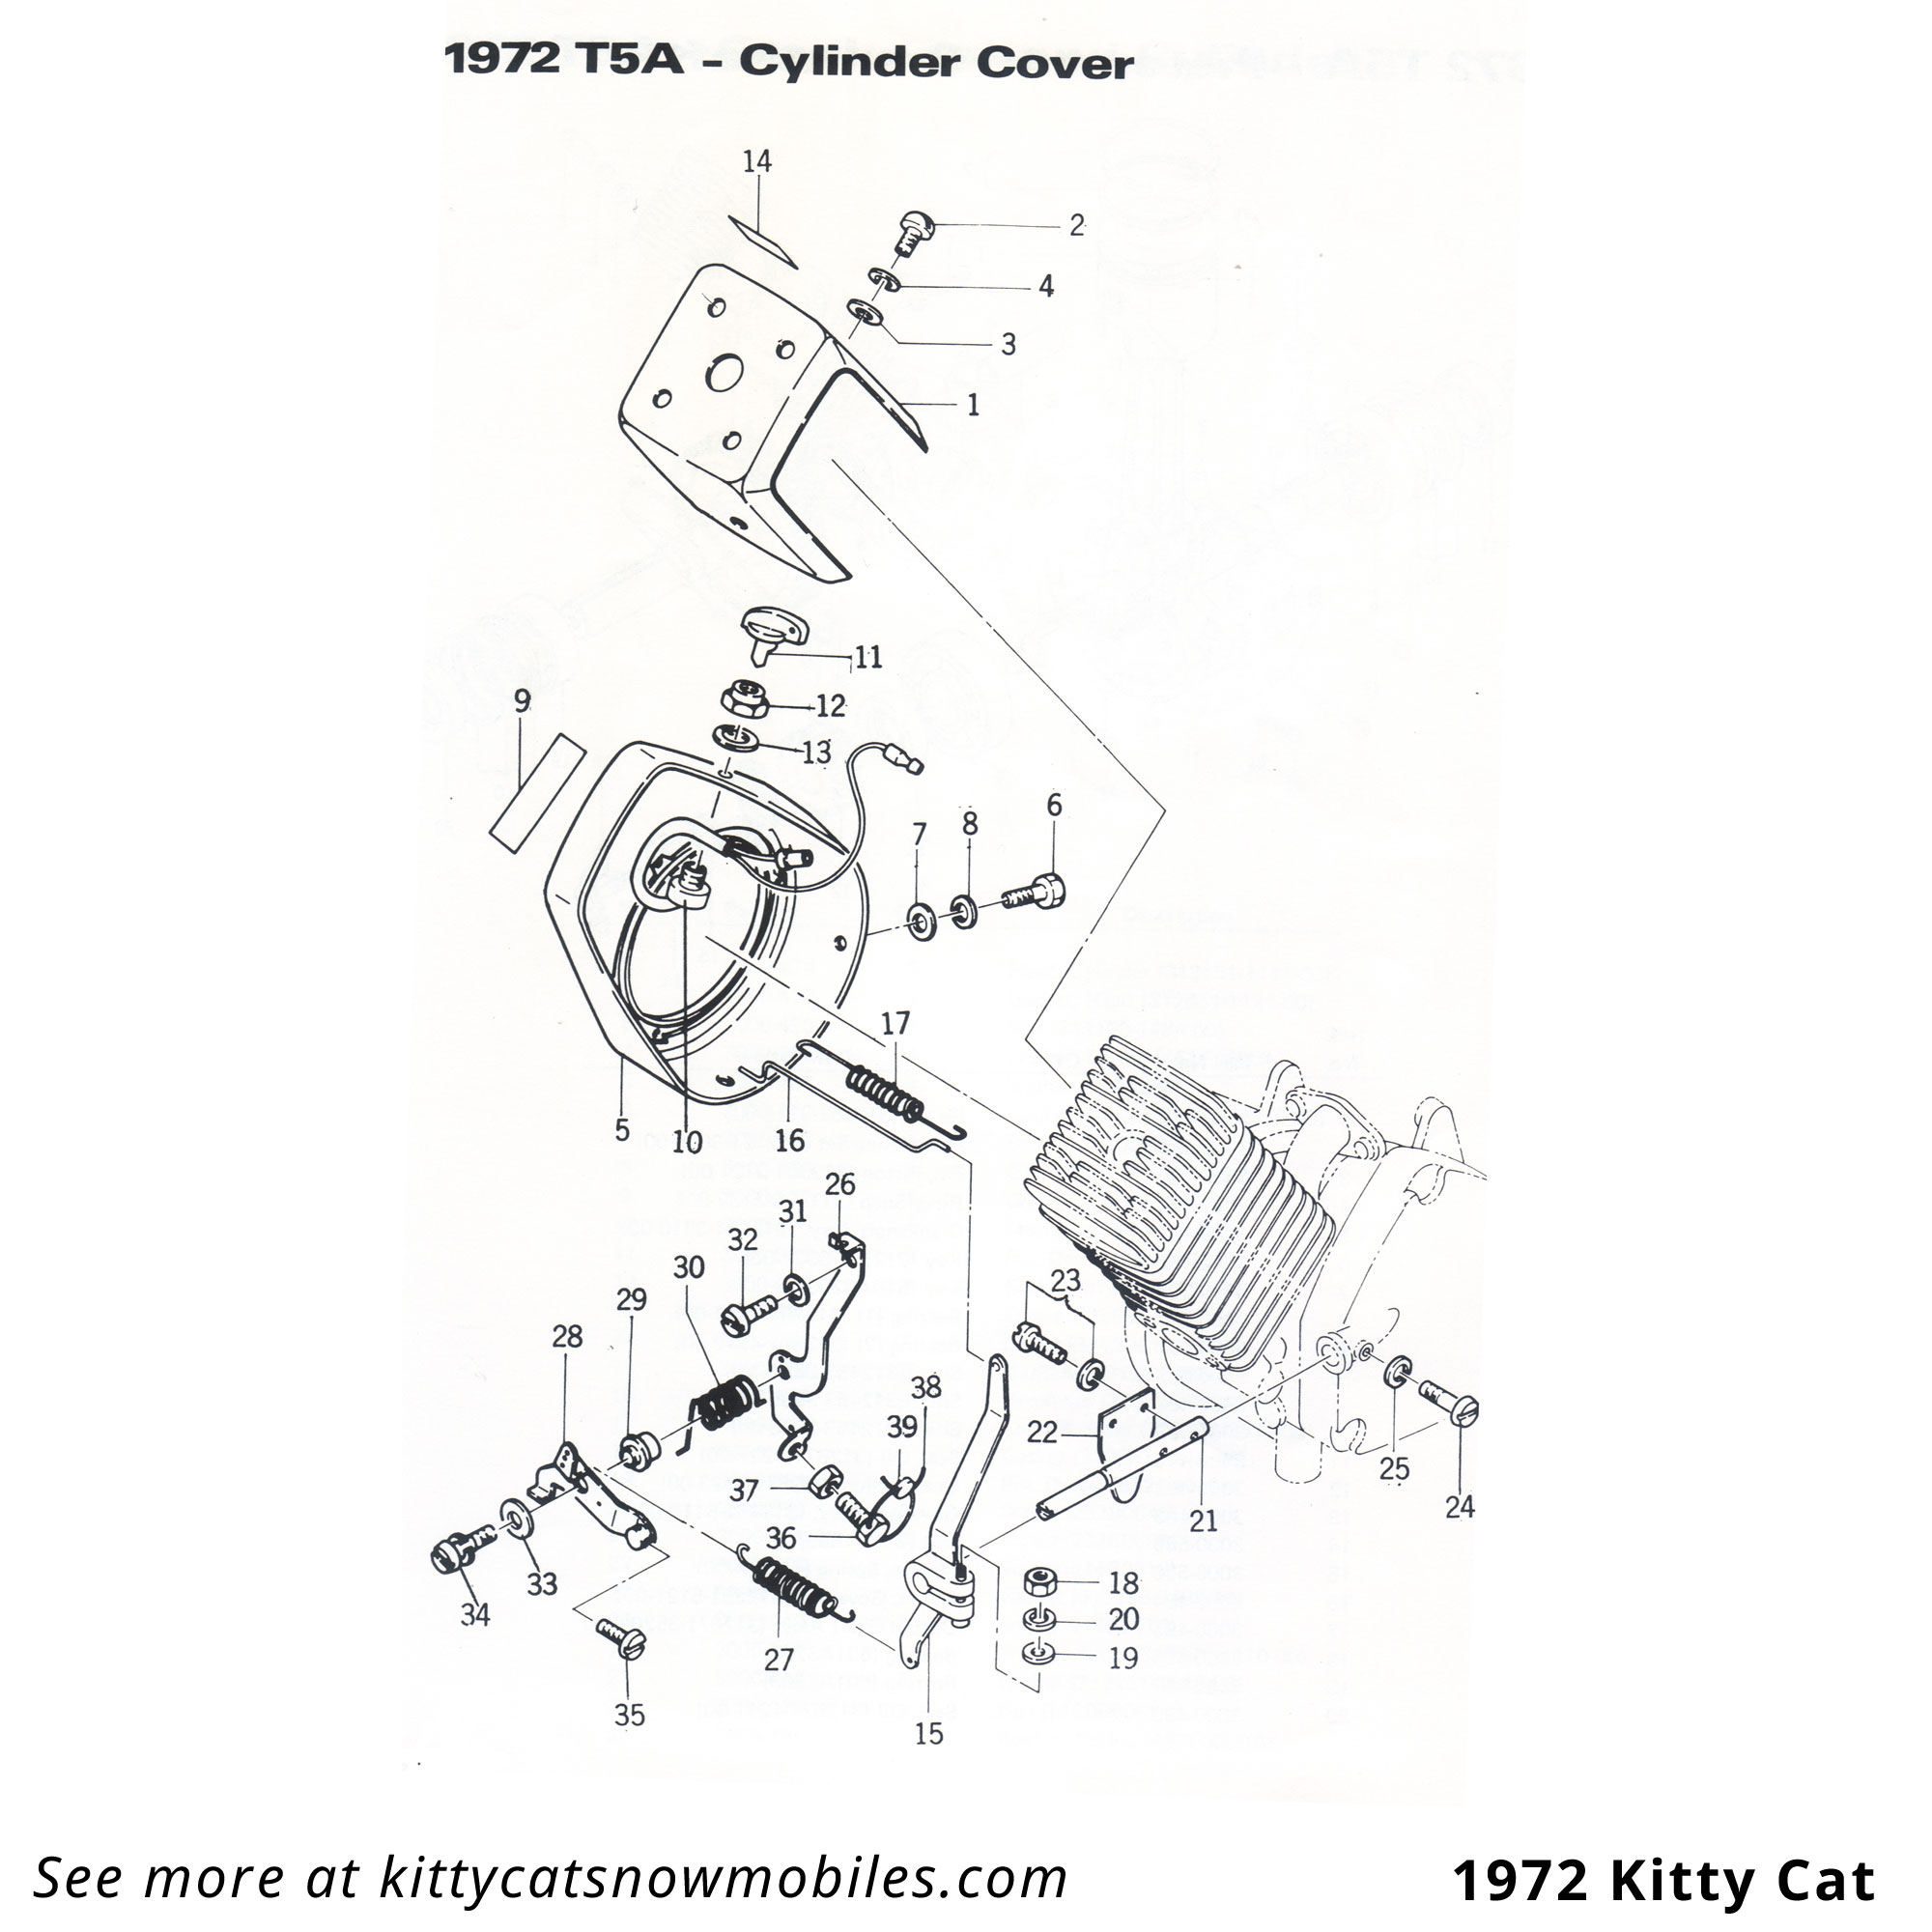 72 cylinder cover parts